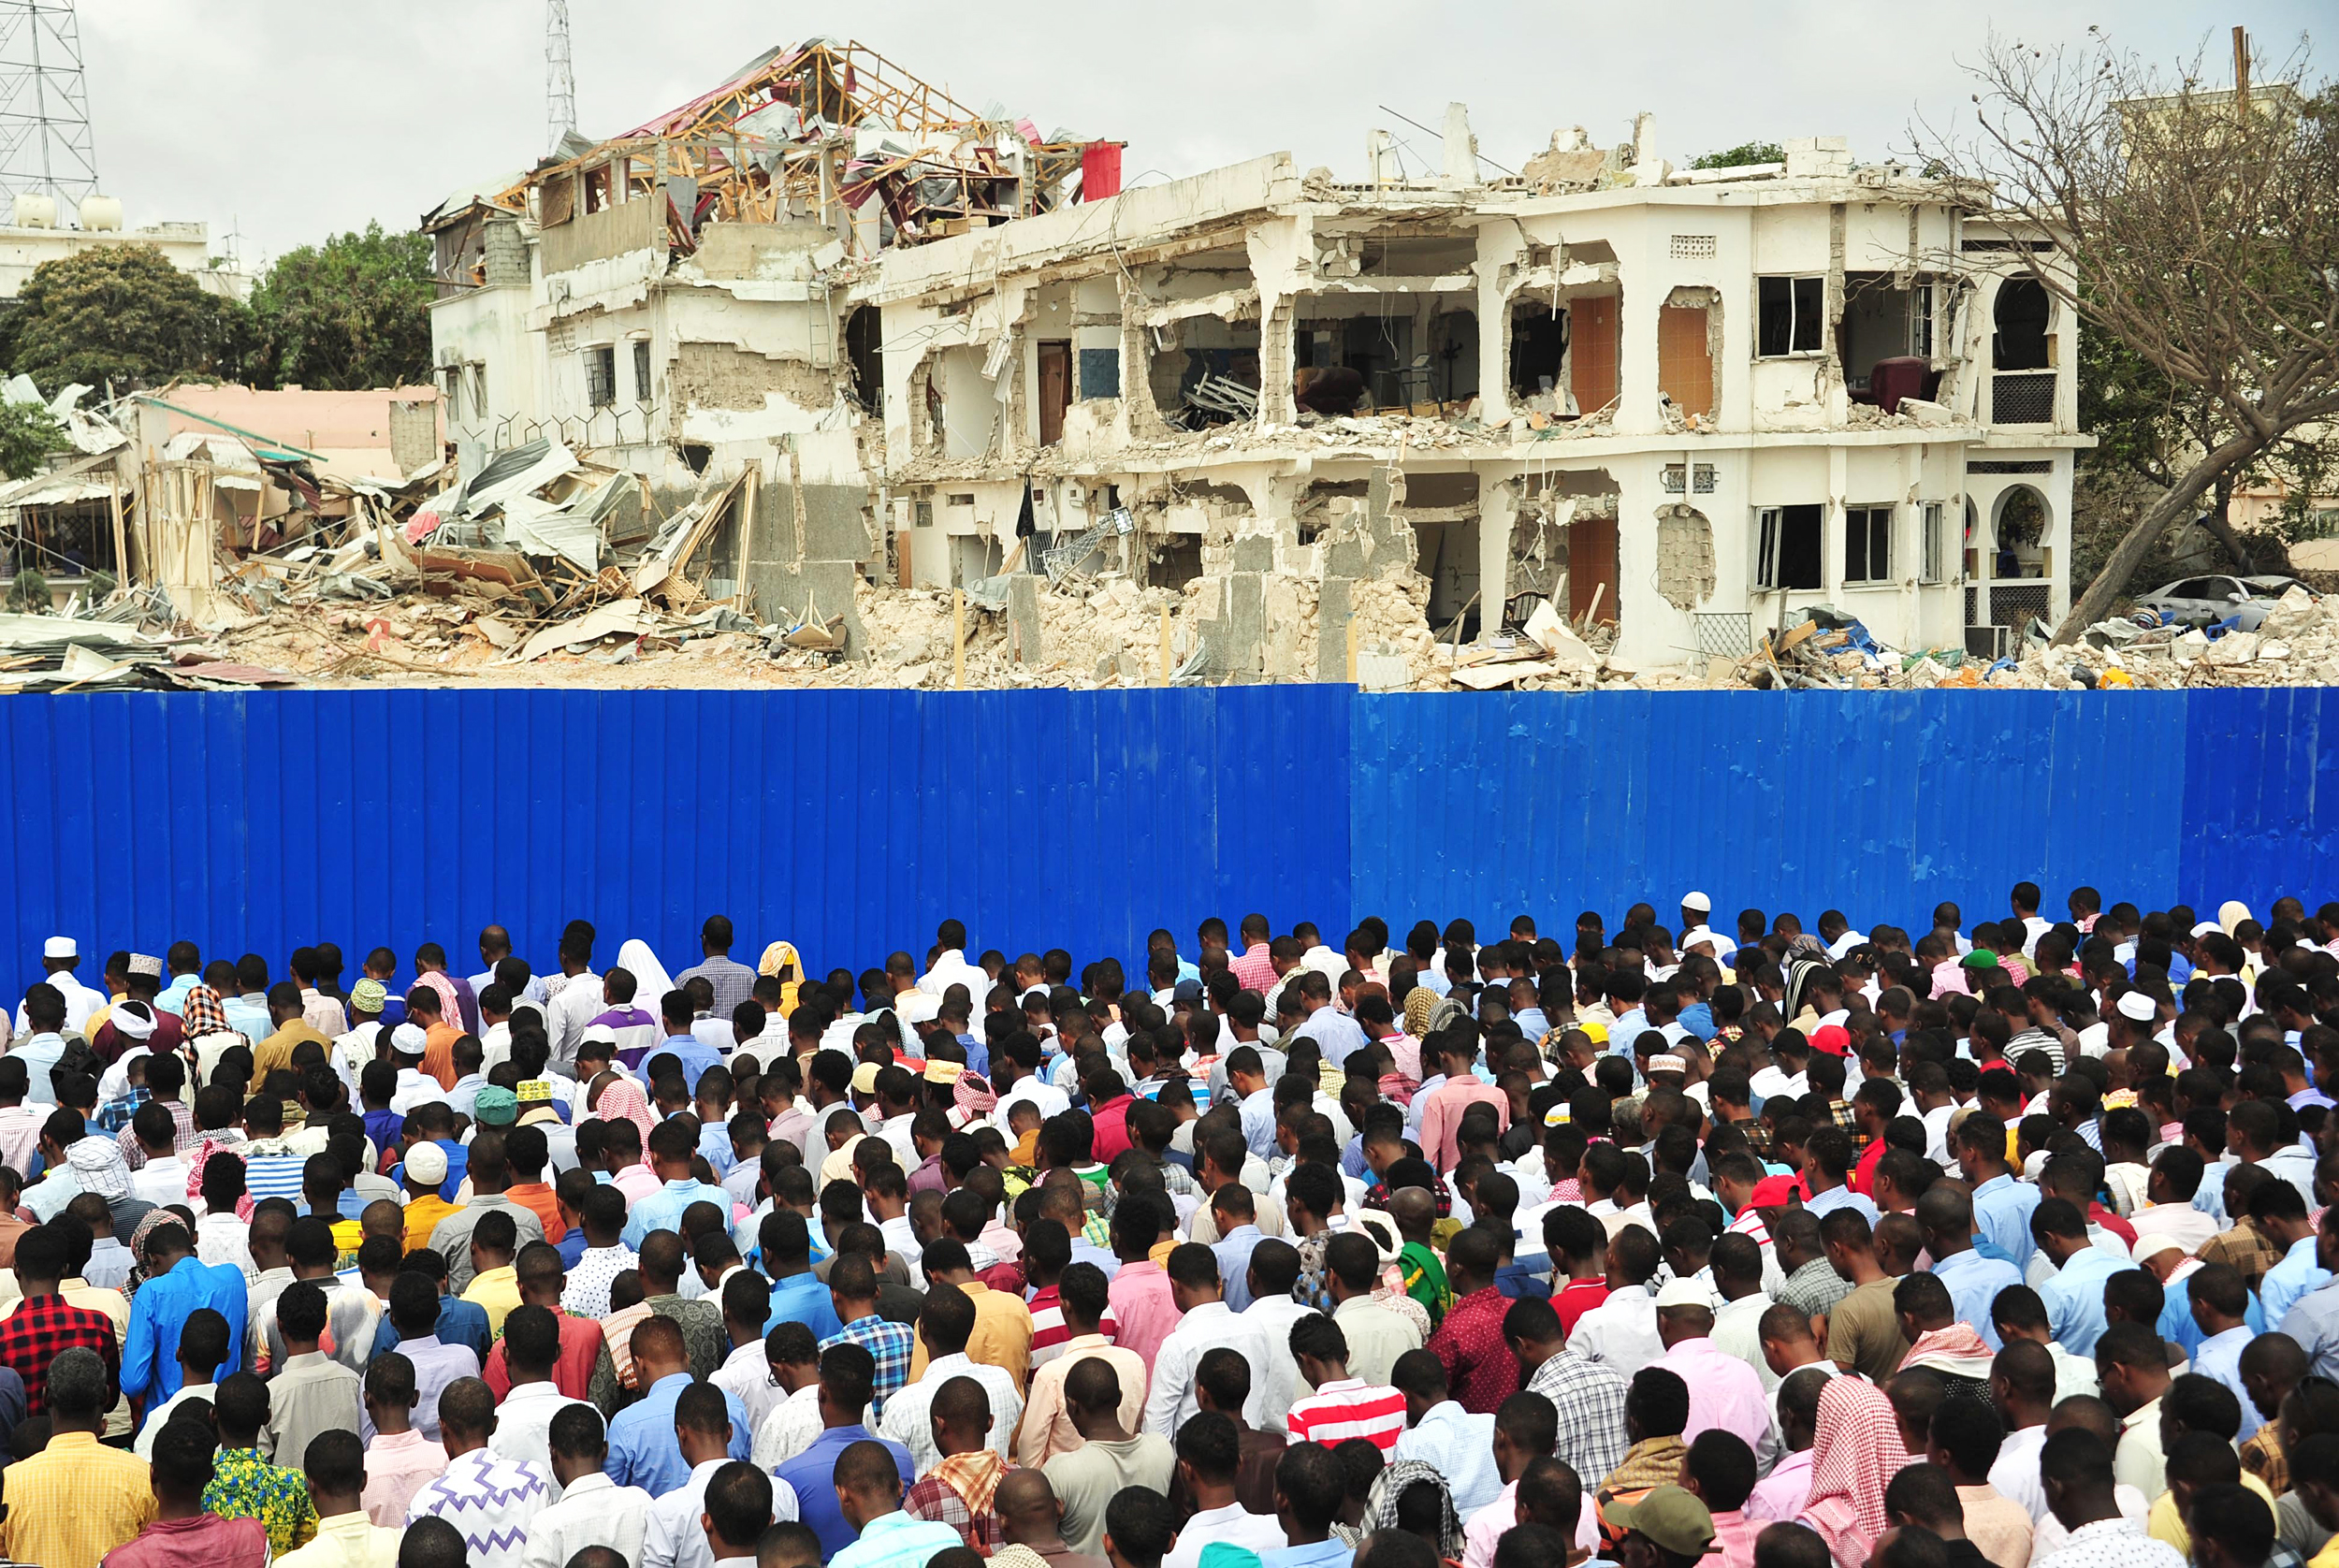 Image: Somalis pray for victims on Oct. 20, 2017 in Mogadishu on the scene of a massive truck bomb attack